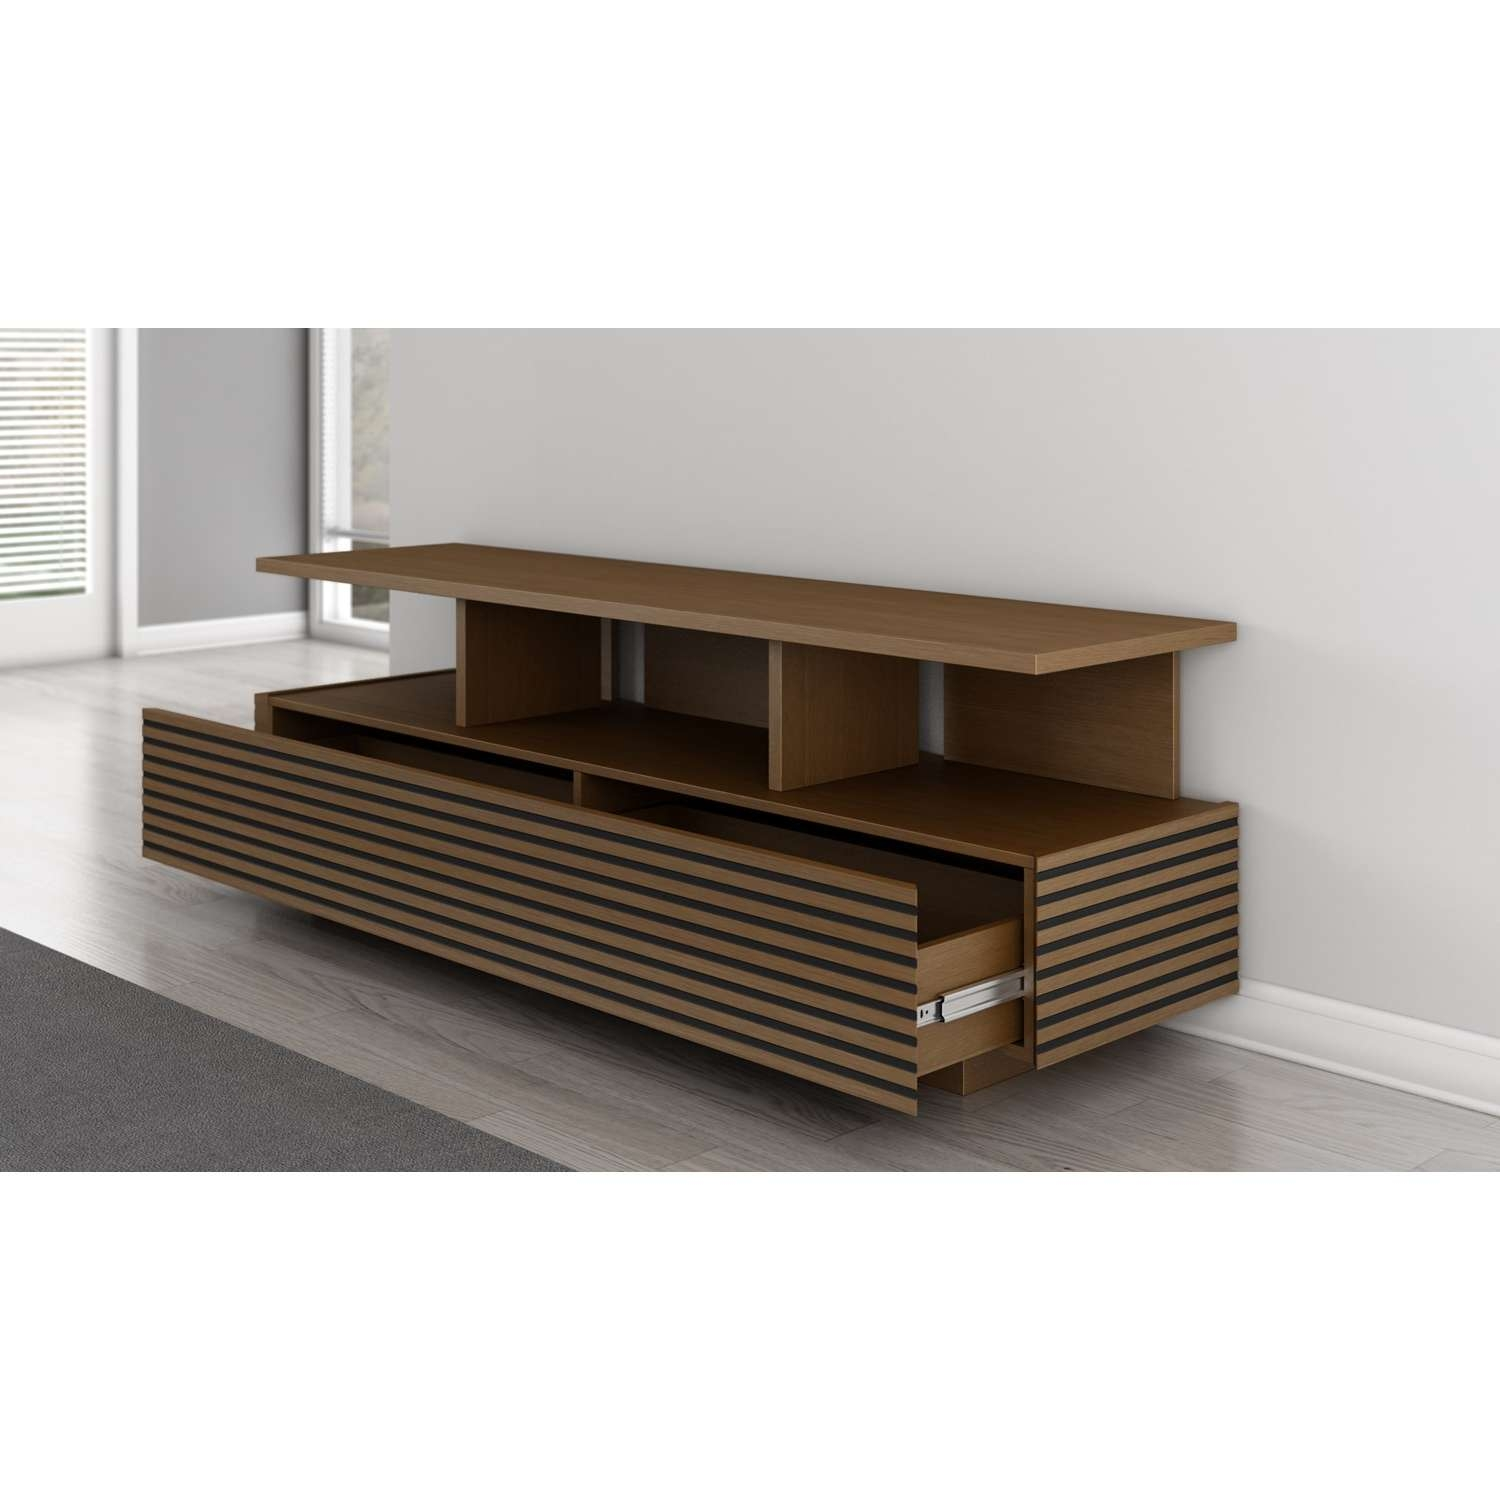 Furnitech Samba 70 Inch Sleek Contemporary Console : Autumn Cherry Intended For Sleek Tv Stands (View 14 of 15)